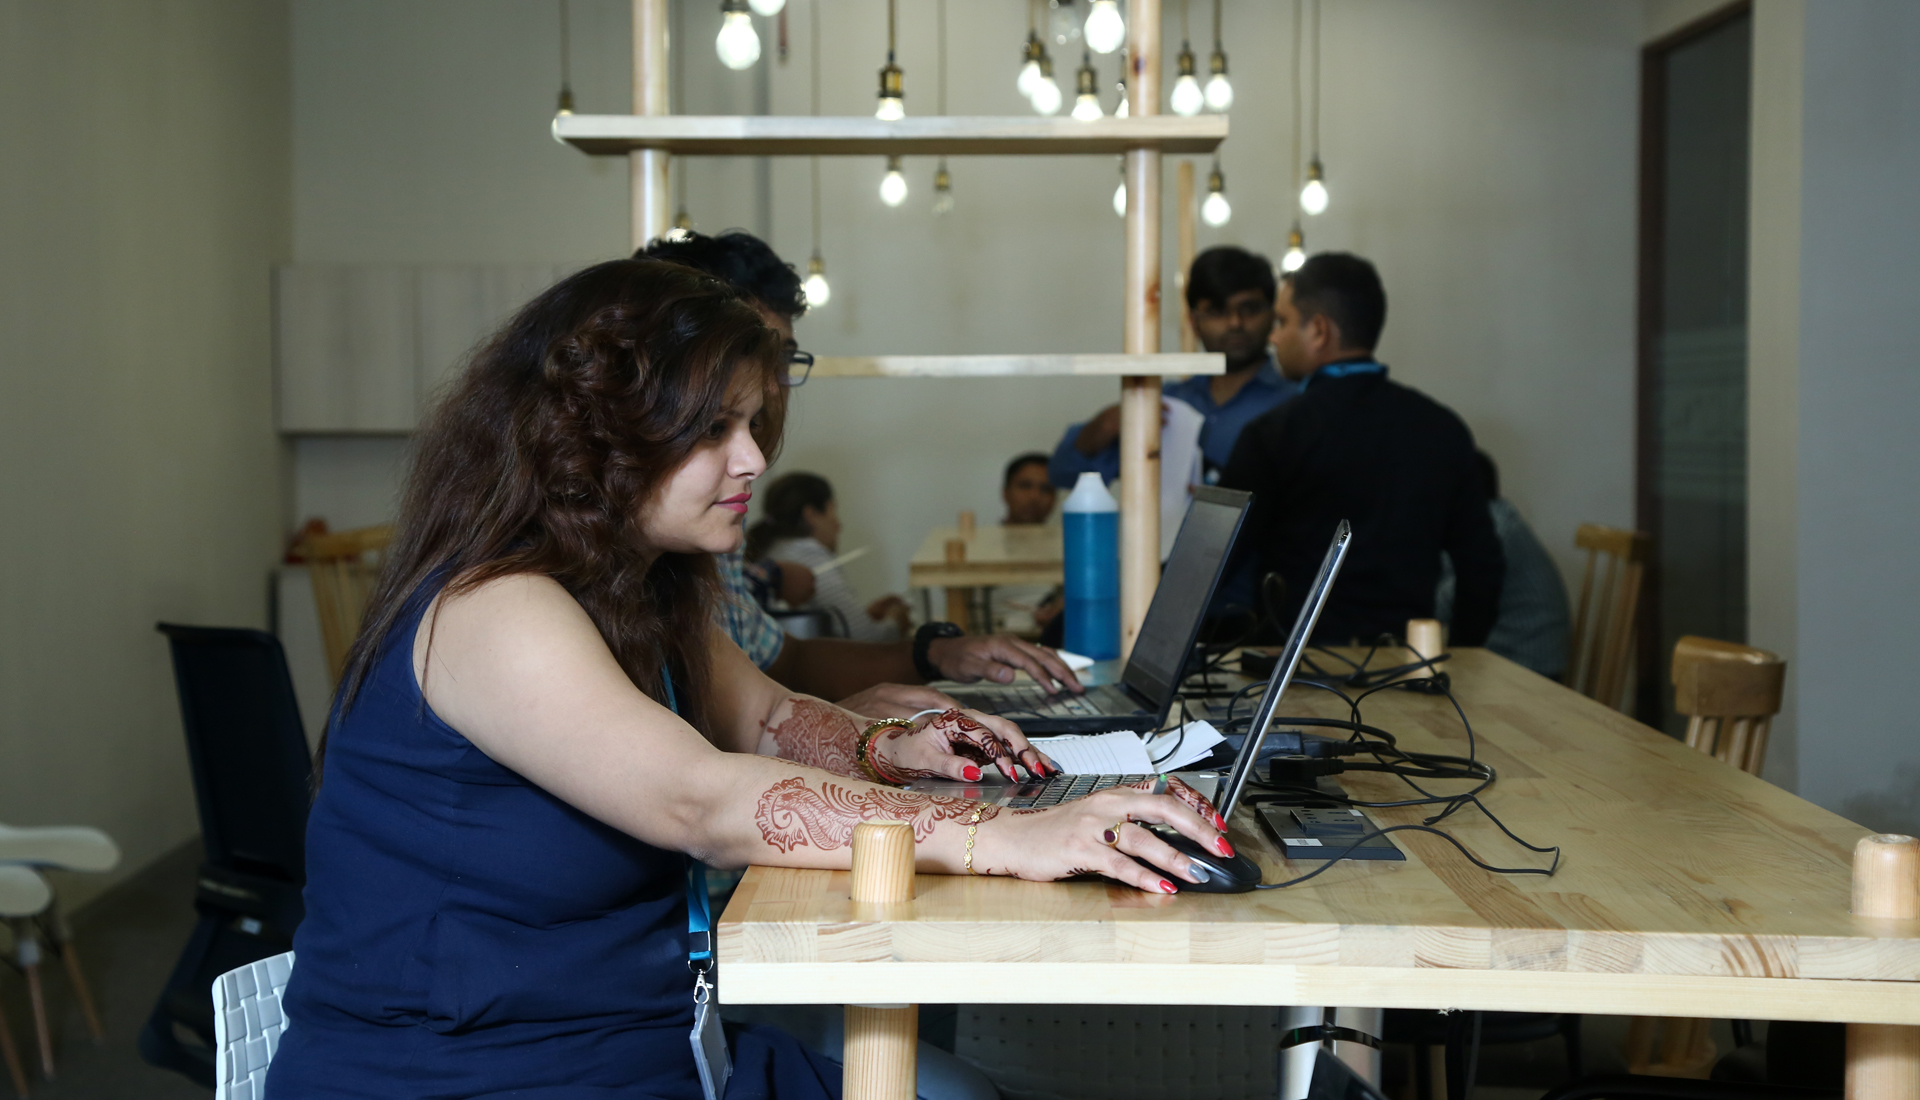 pros-and-cons-of-dedicated-desks-in-coworking-space